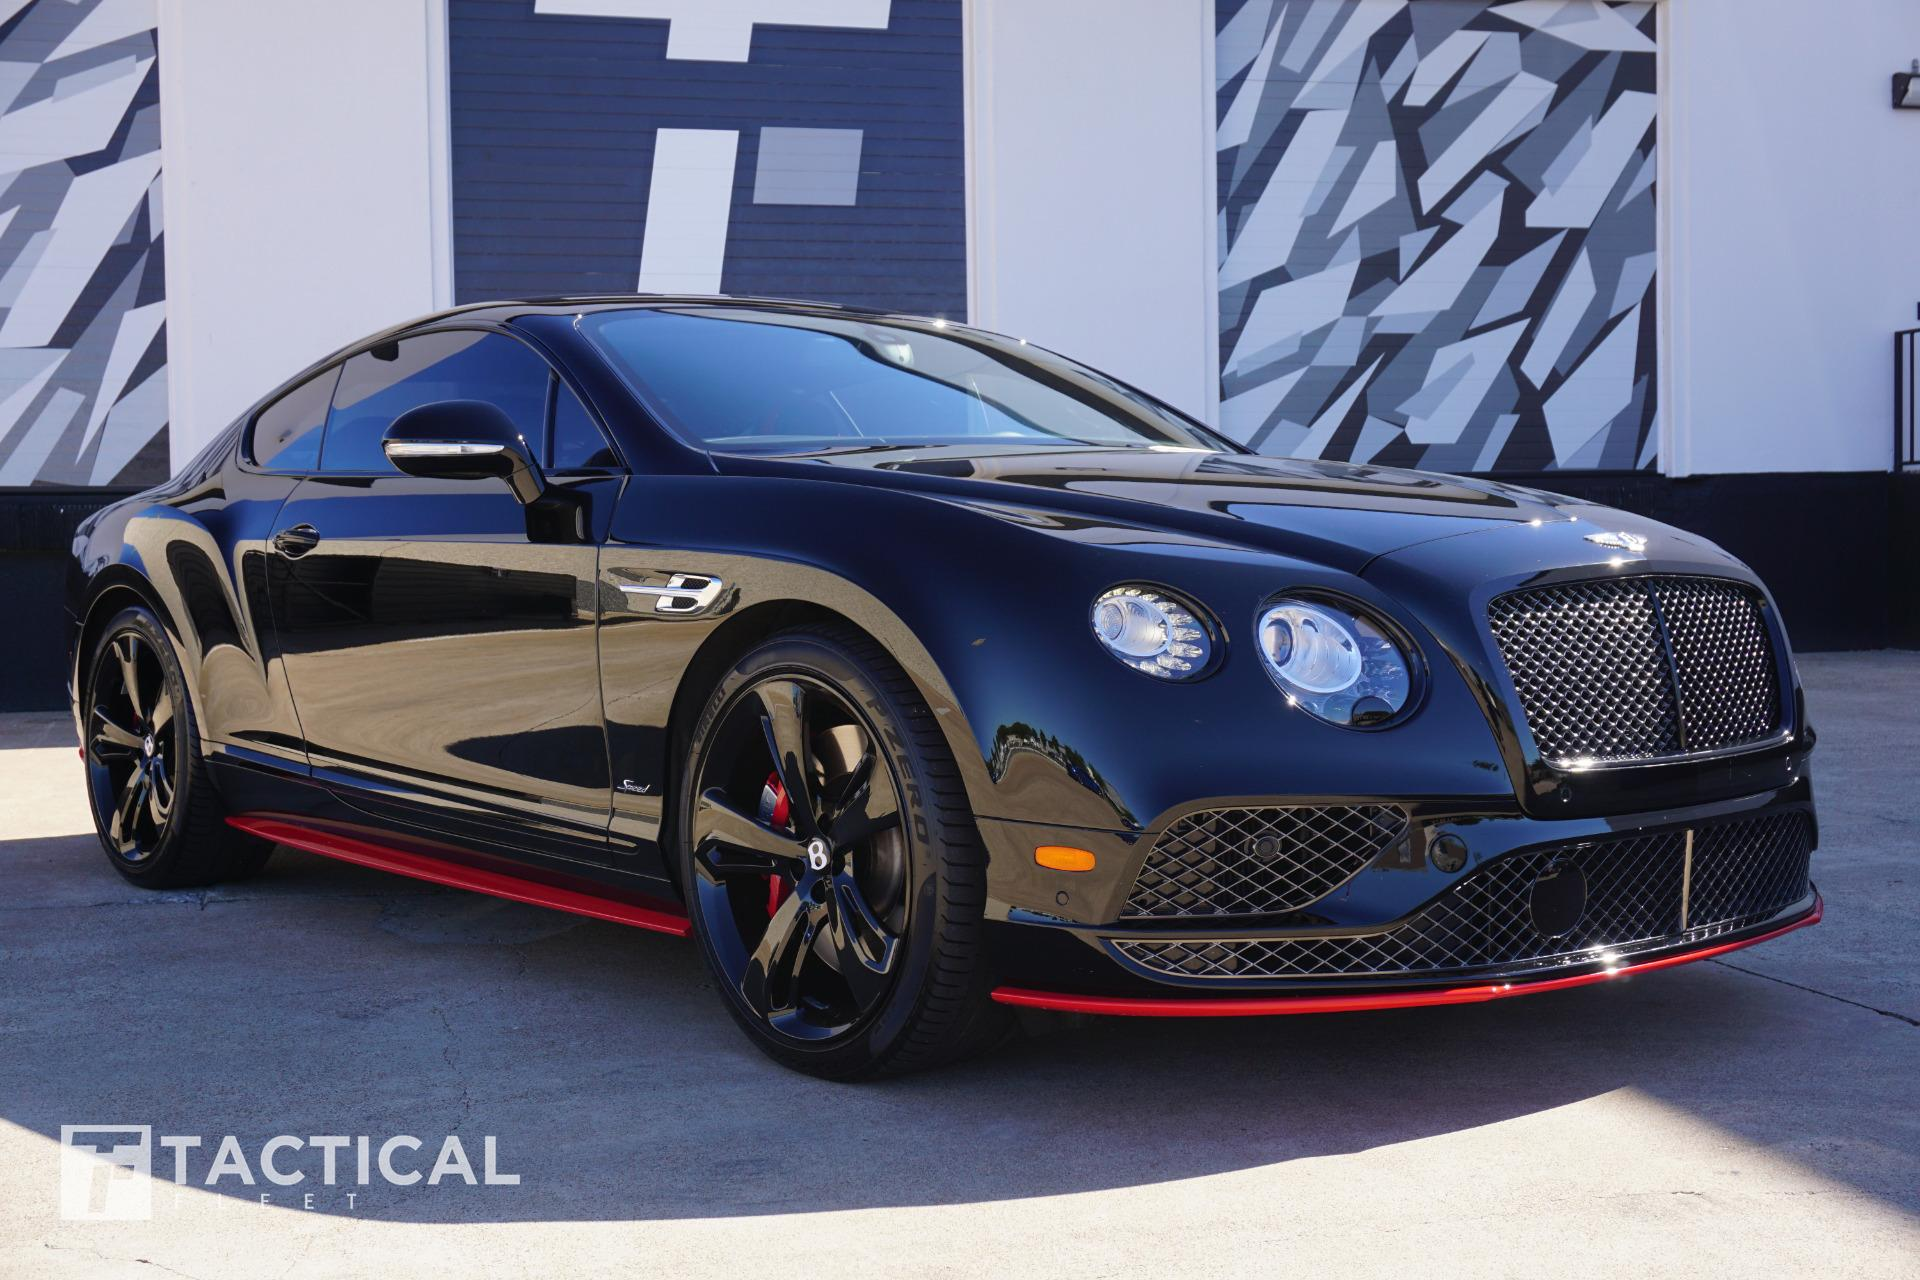 Used 2017 Bentley Continental Gt Speed Black Ed For Sale 174 900 Tactical Fleet Stock Tf1233